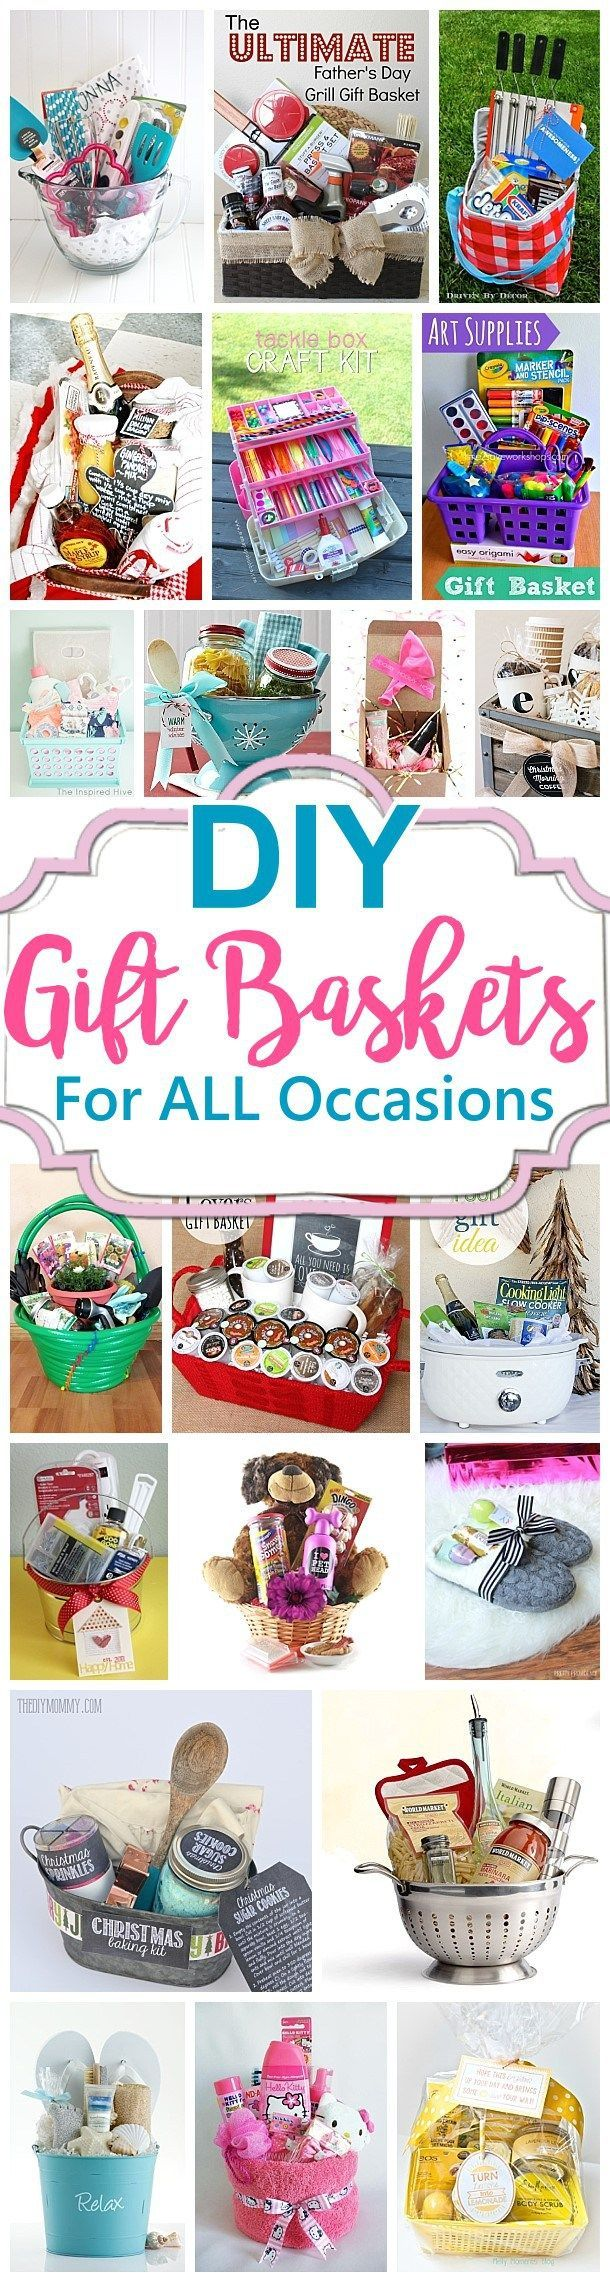 Top 25 ideas about presents on pinterest present ideas Do it yourself christmas gifts